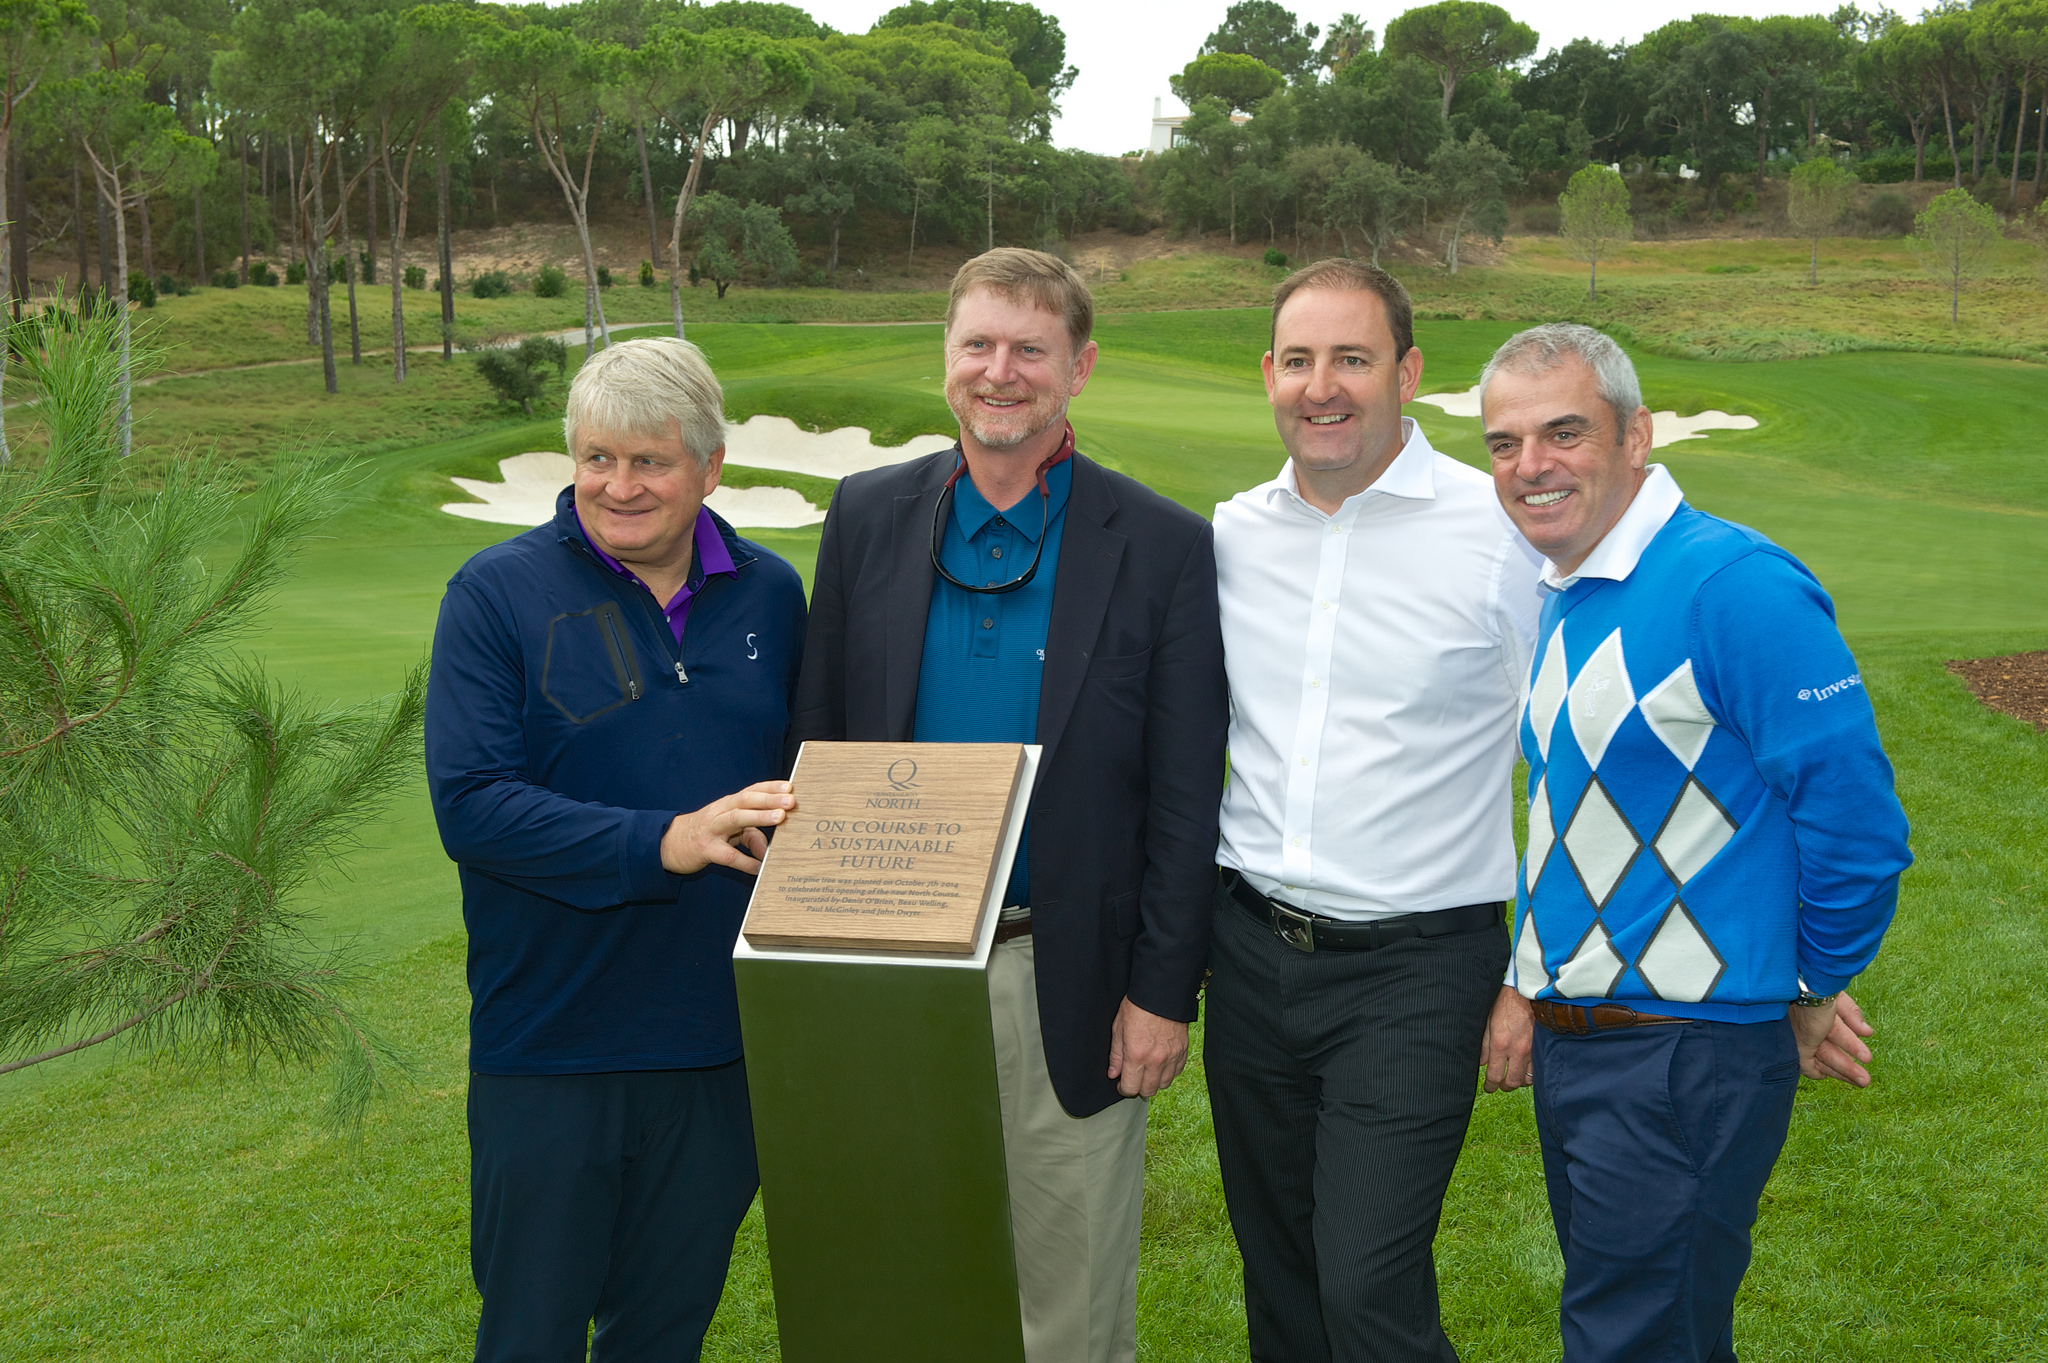 Beau Welling (second from left) and Paul McGinley (right) were in charge of the rebuild